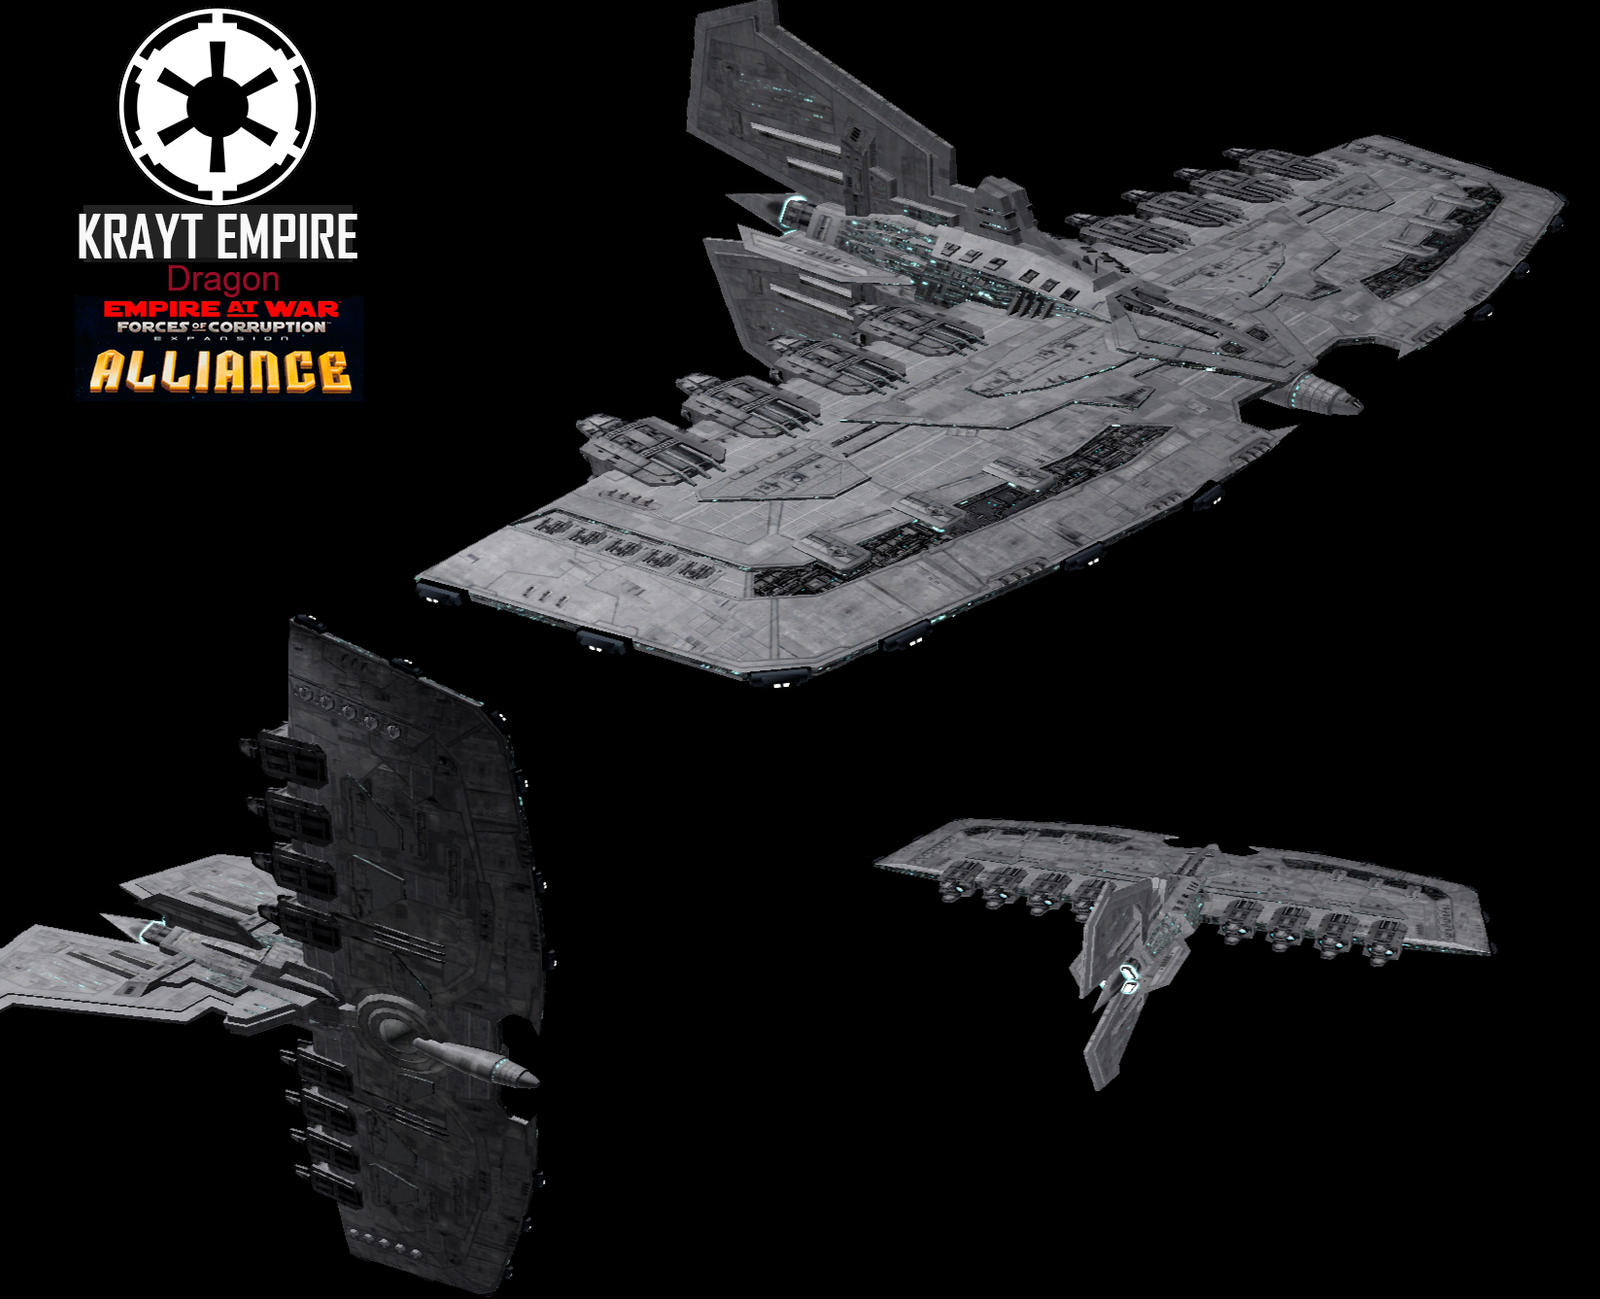 Star Wars Empire at War – FOC Alliance – Very big ships are not very useful